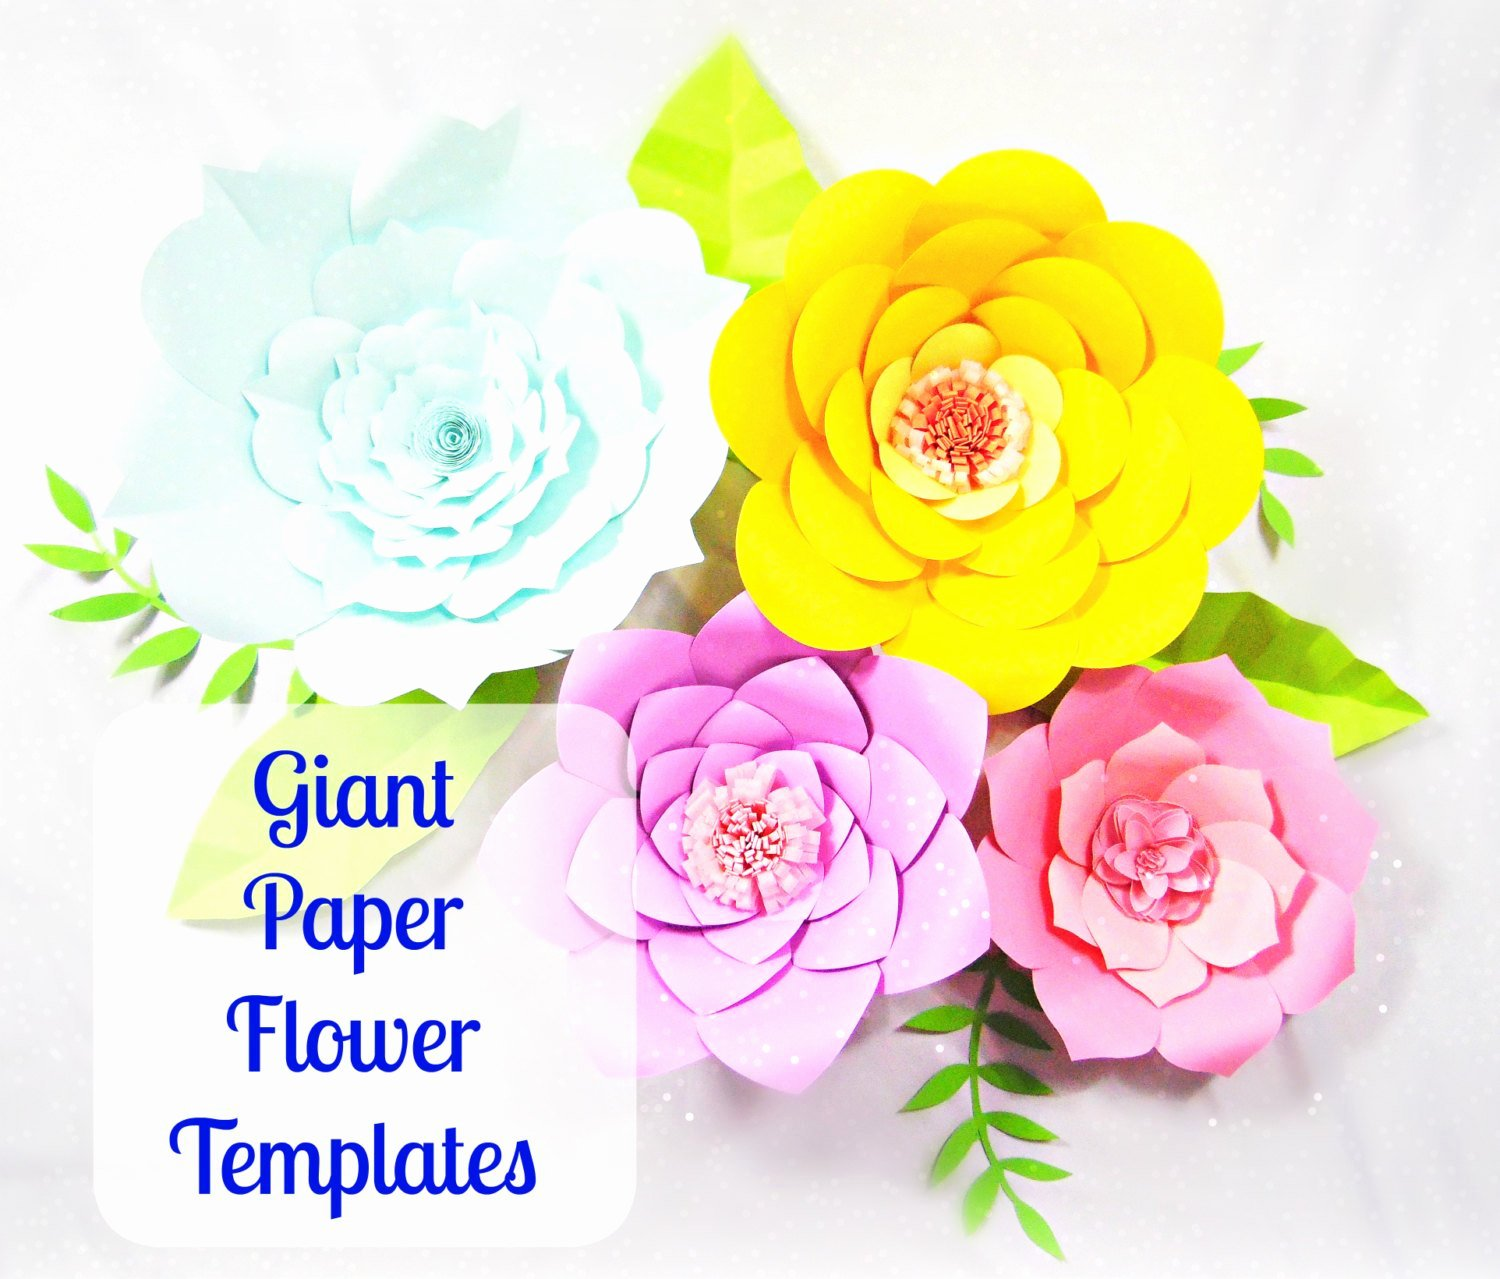 Diy Paper Flower Template New Giant Paper Flower Templates Diy Printable Flower Templates